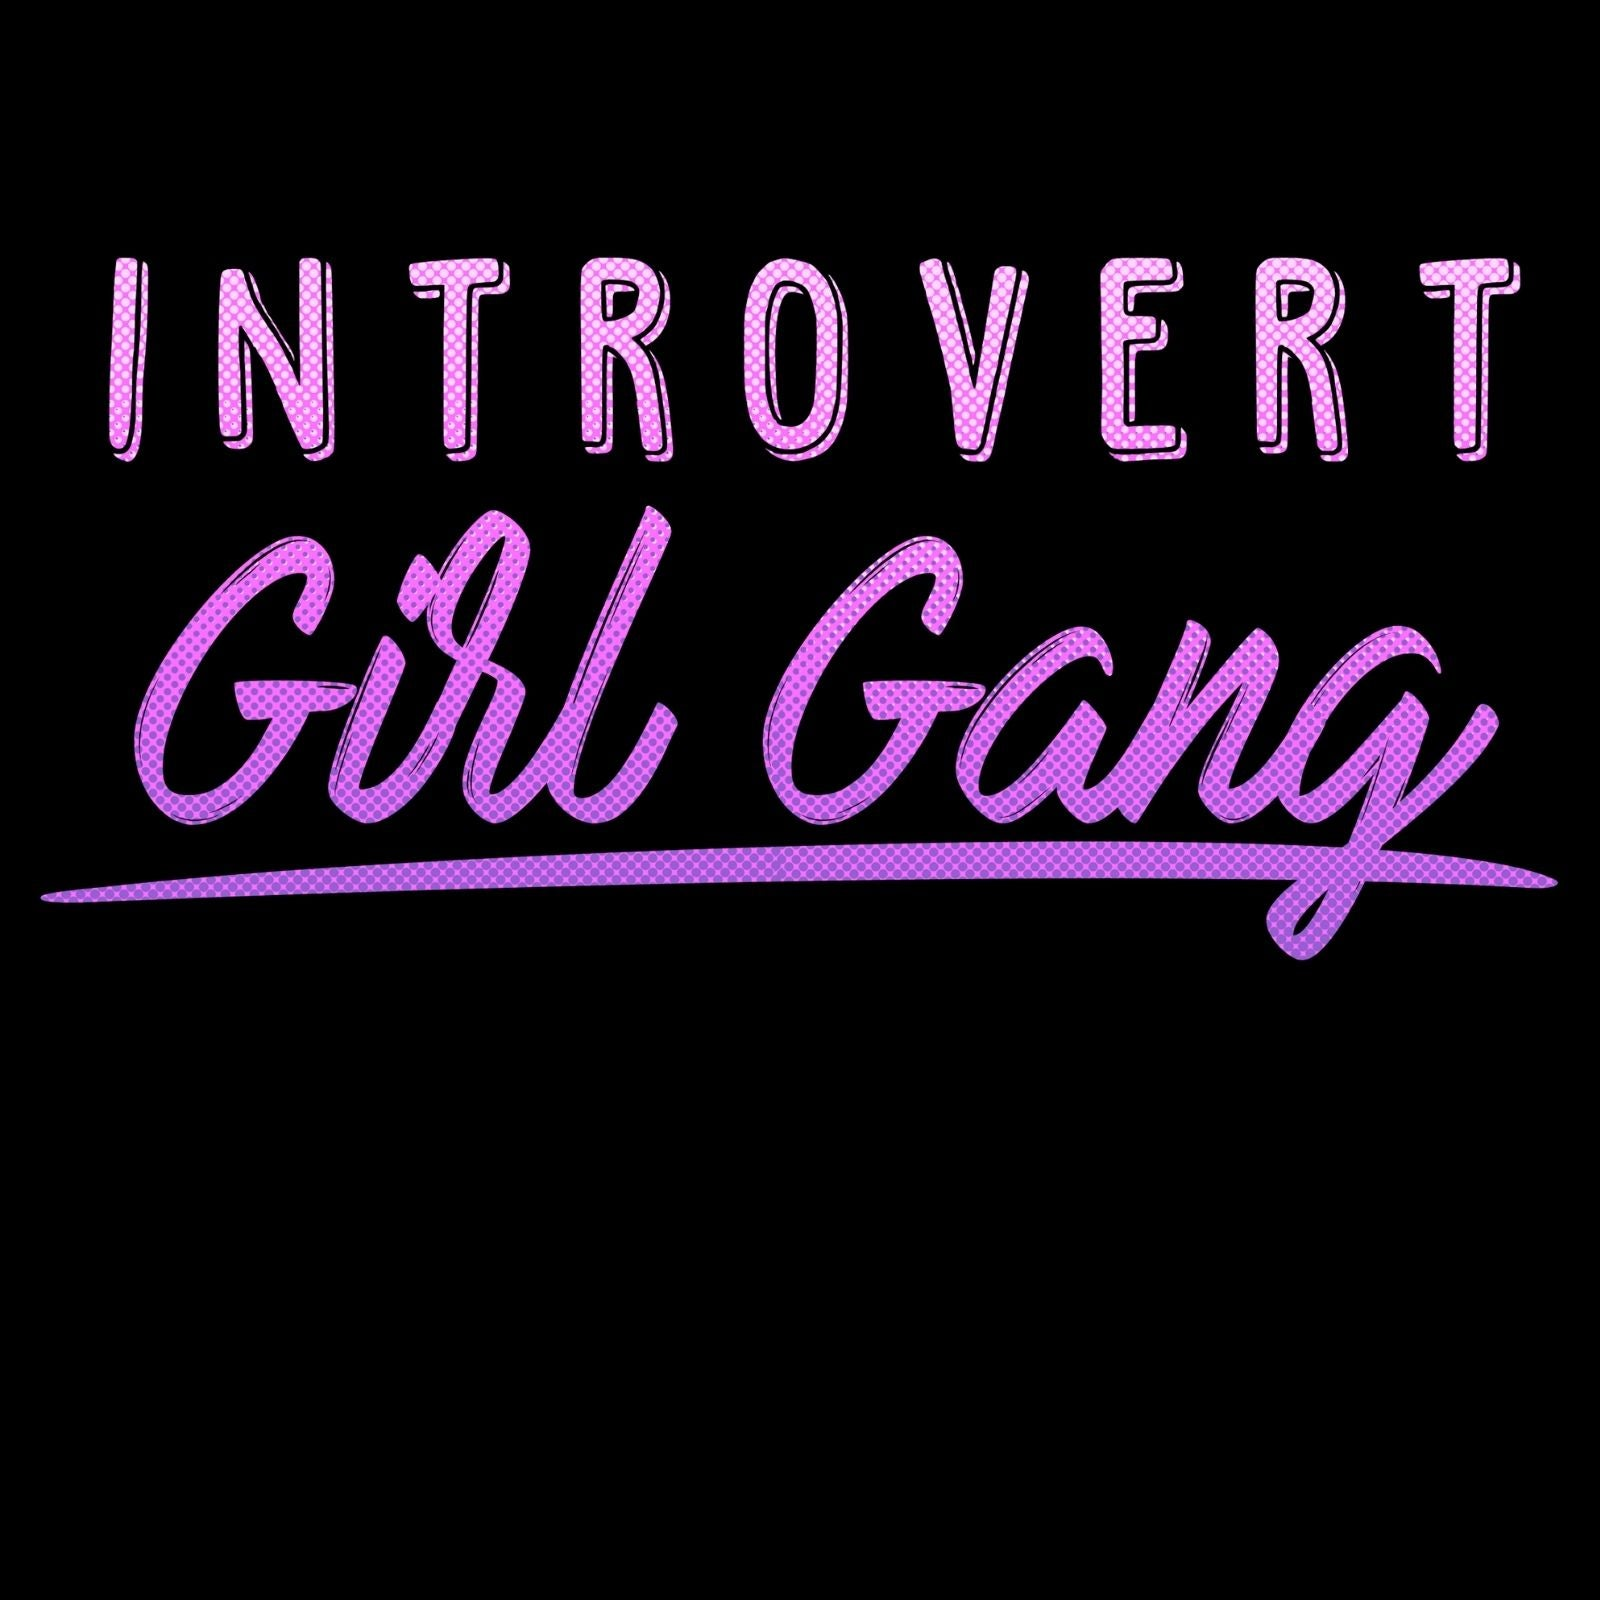 Introvert Girl Gang - Bastard Graphics